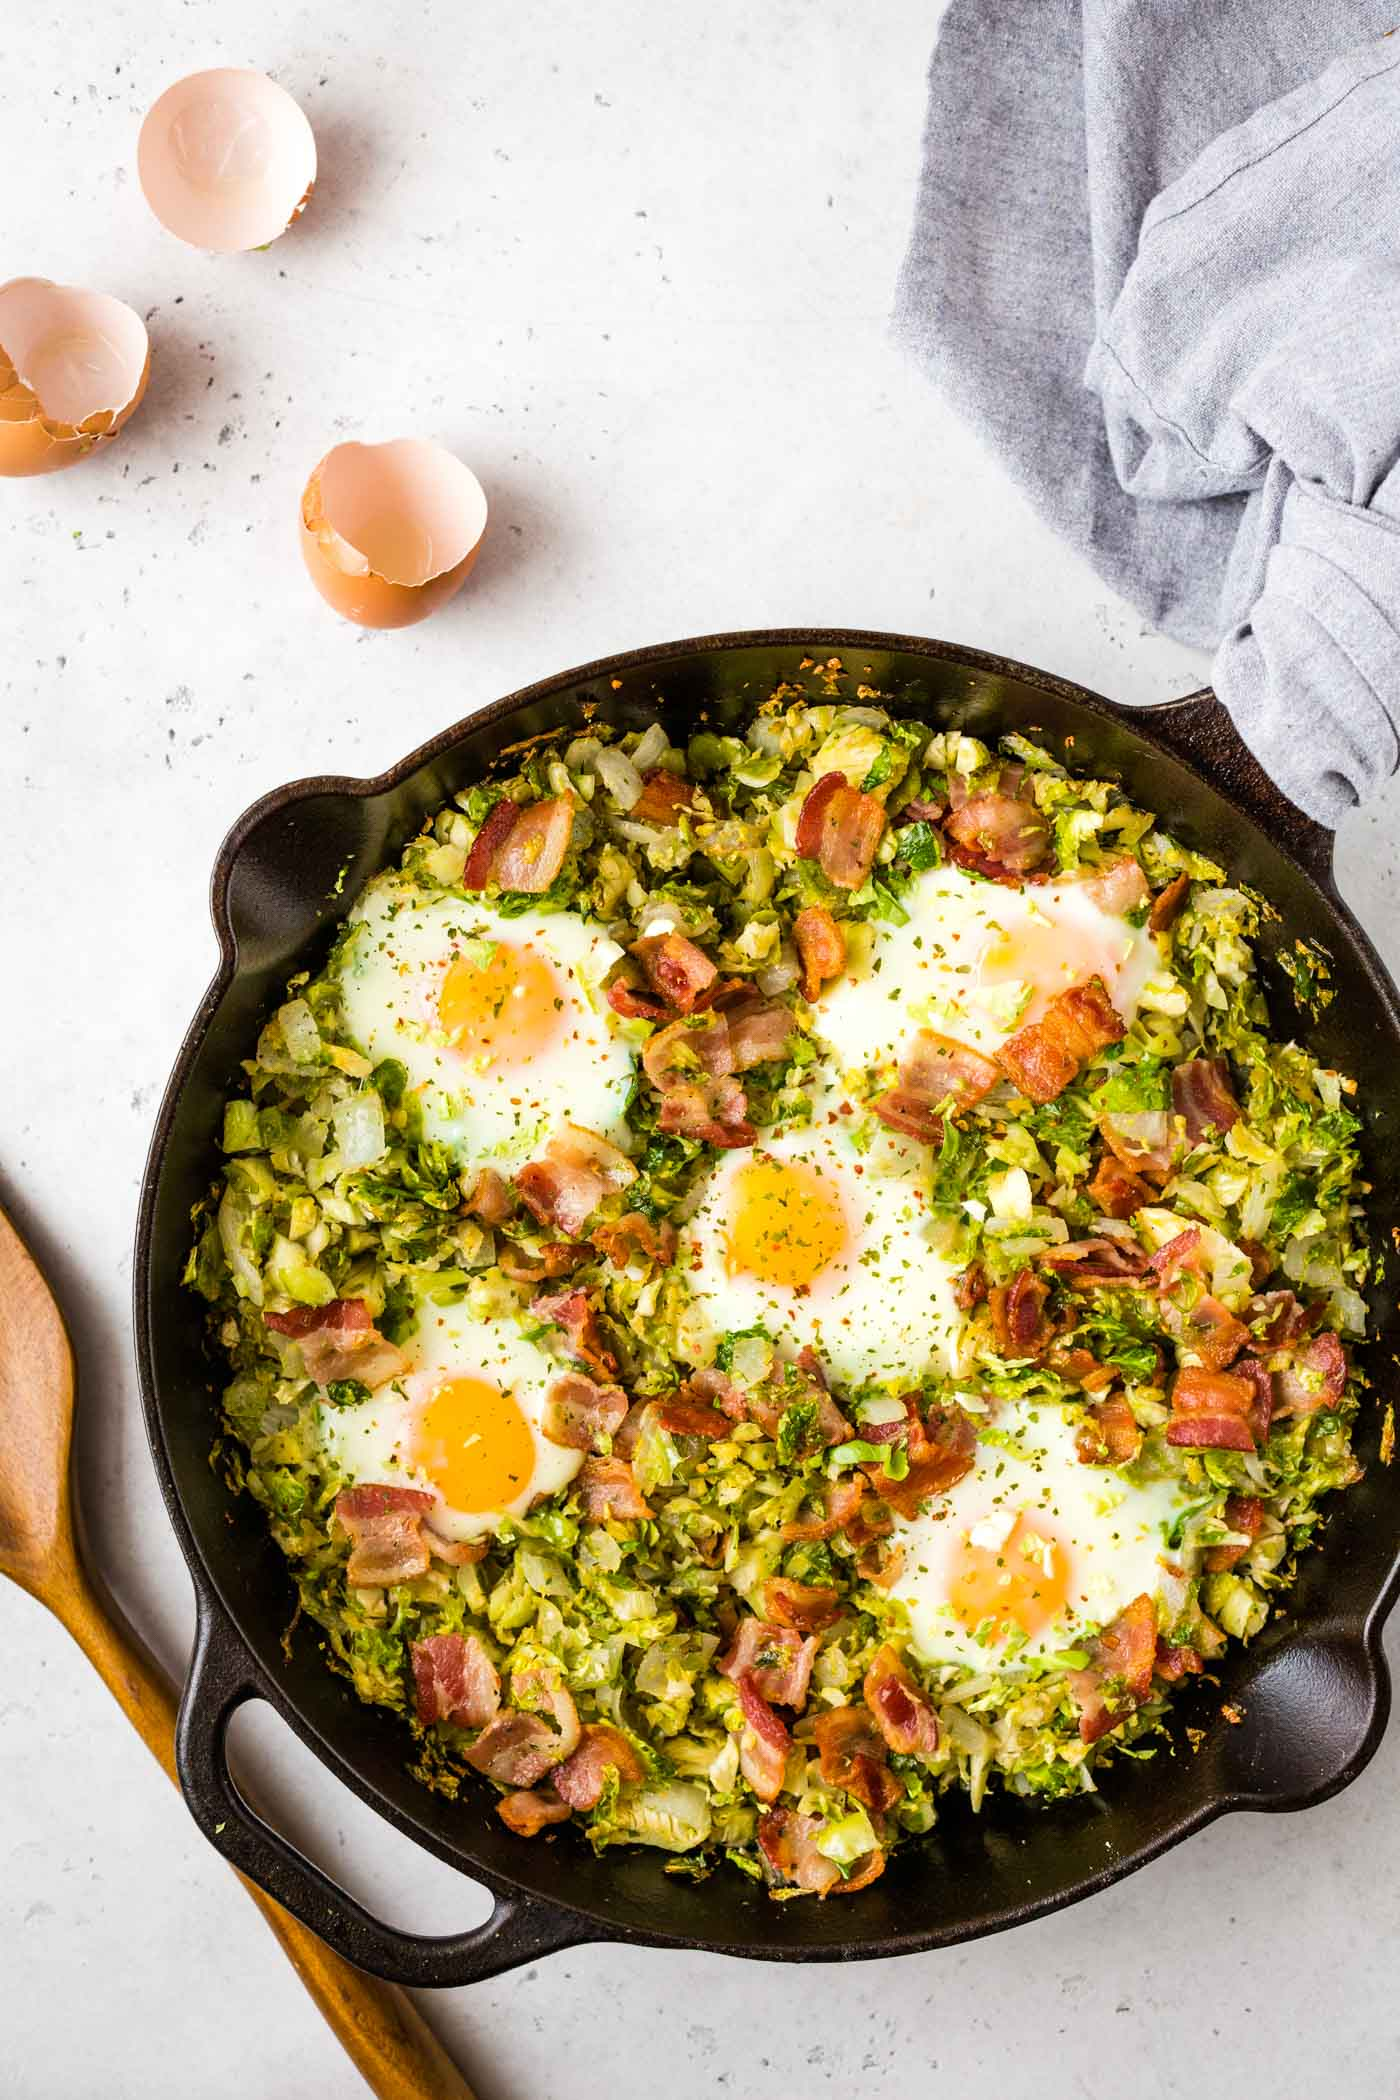 Shredded Brussels sprouts, bacon, and runny eggs in cast iron skillet